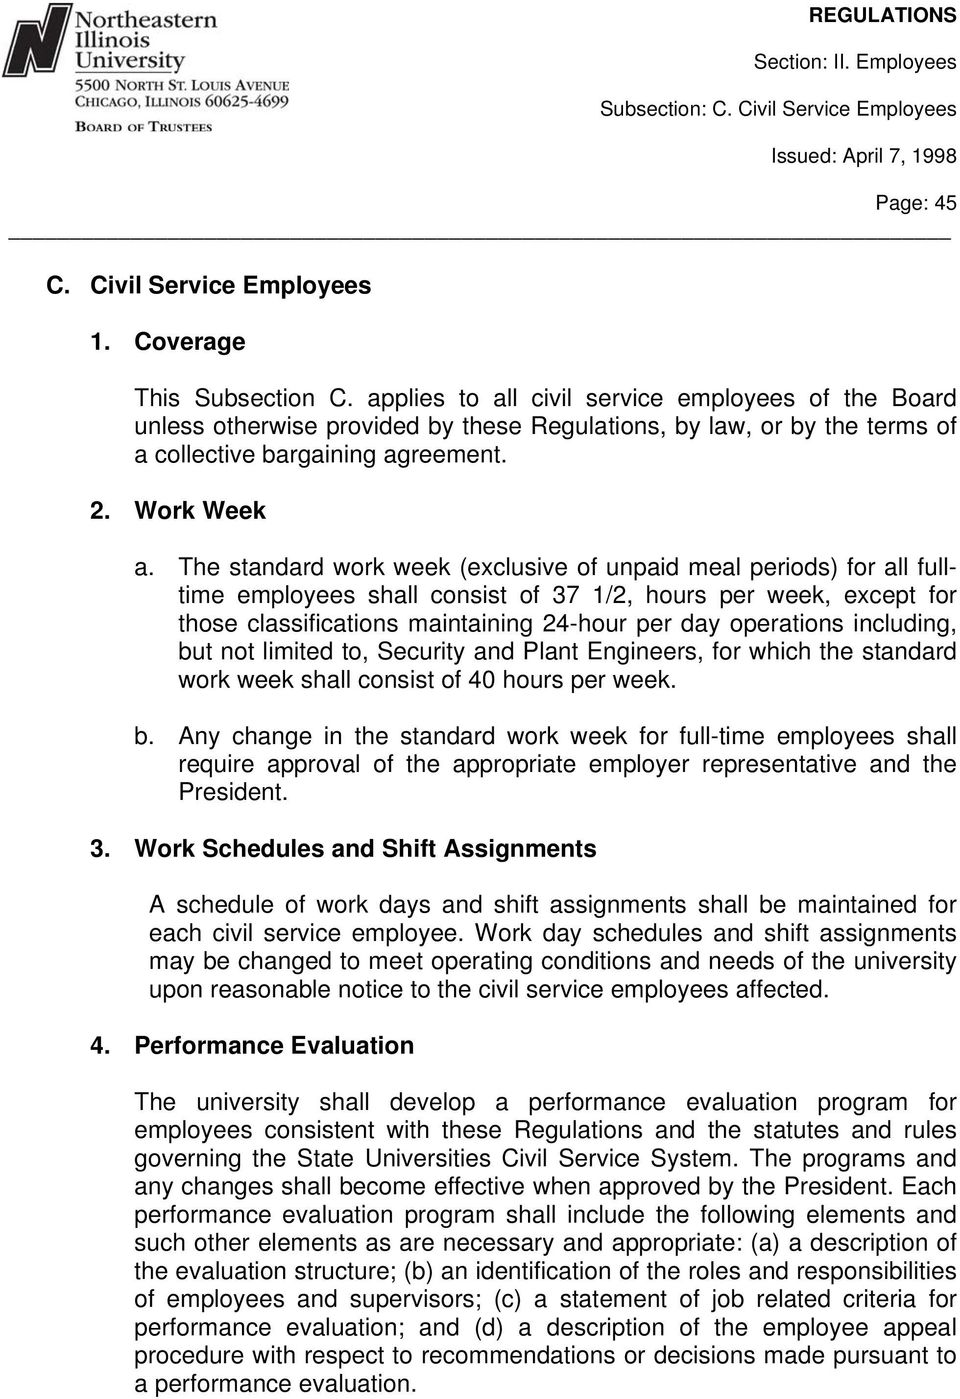 The standard work week (exclusive of unpaid meal periods) for all fulltime employees shall consist of 37 1/2, hours per week, except for those classifications maintaining 24-hour per day operations